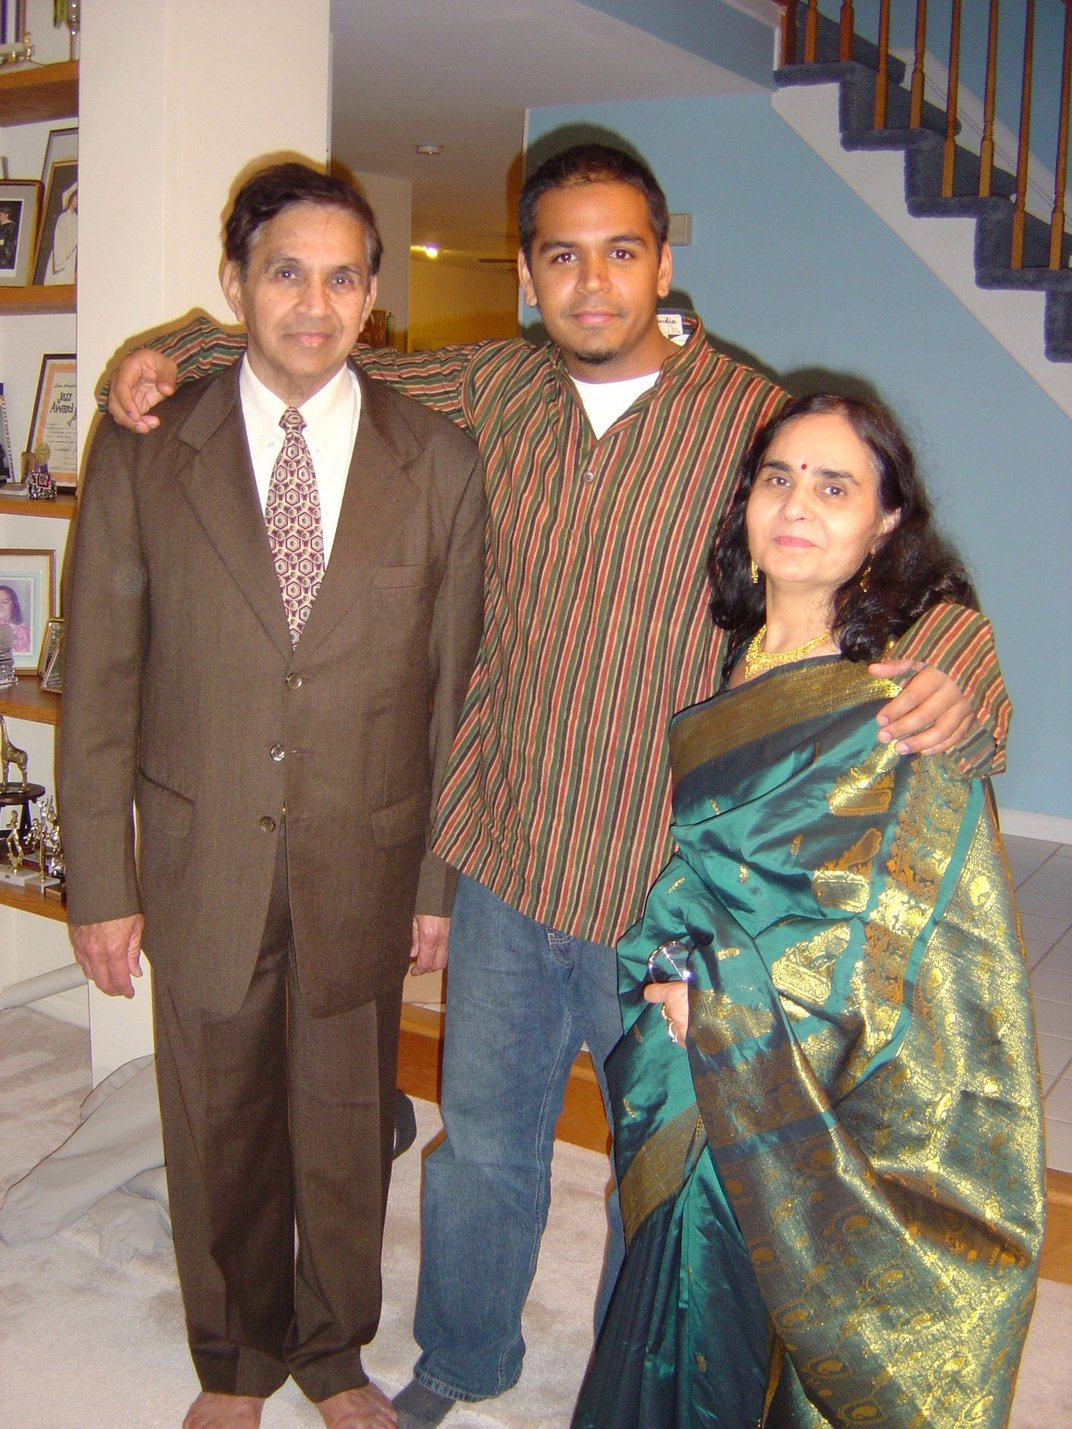 Photo of the author posing with his arms around his mother and father. They are all dressed up for a special occasion, the men in Western dress suits and the mom is traditional South Asian dress.